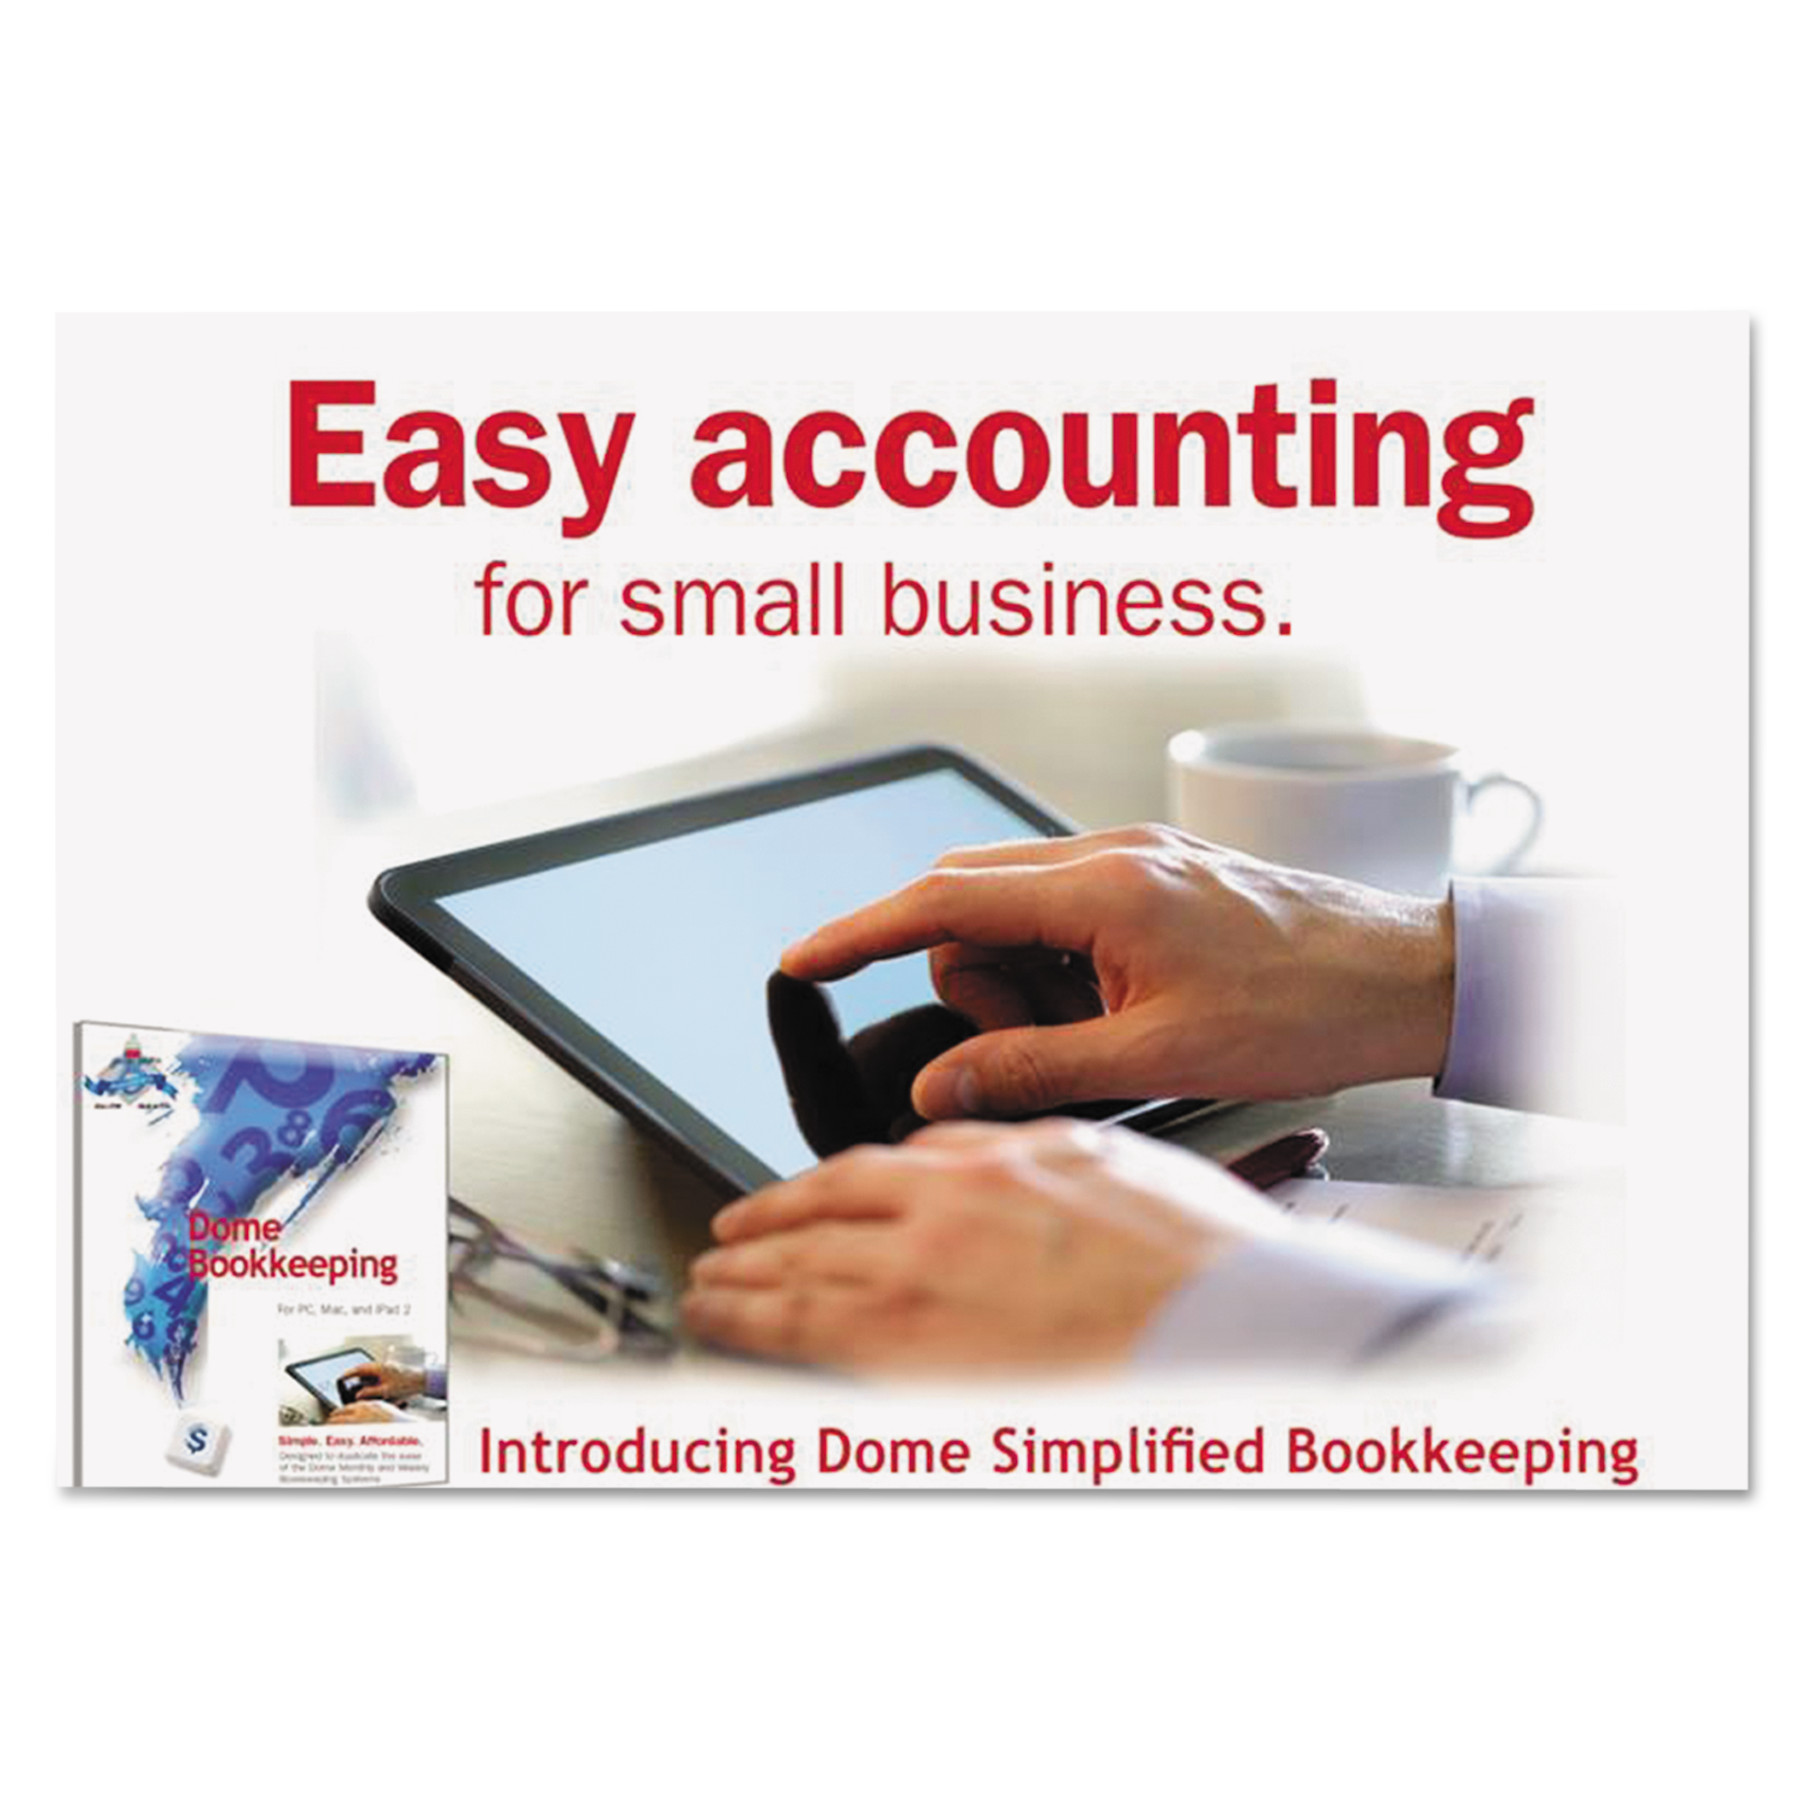 Dome Simplified Bookkeeping Software, Renewal, Mac OS X & Later, Windows 7, 8 -DOM0114R